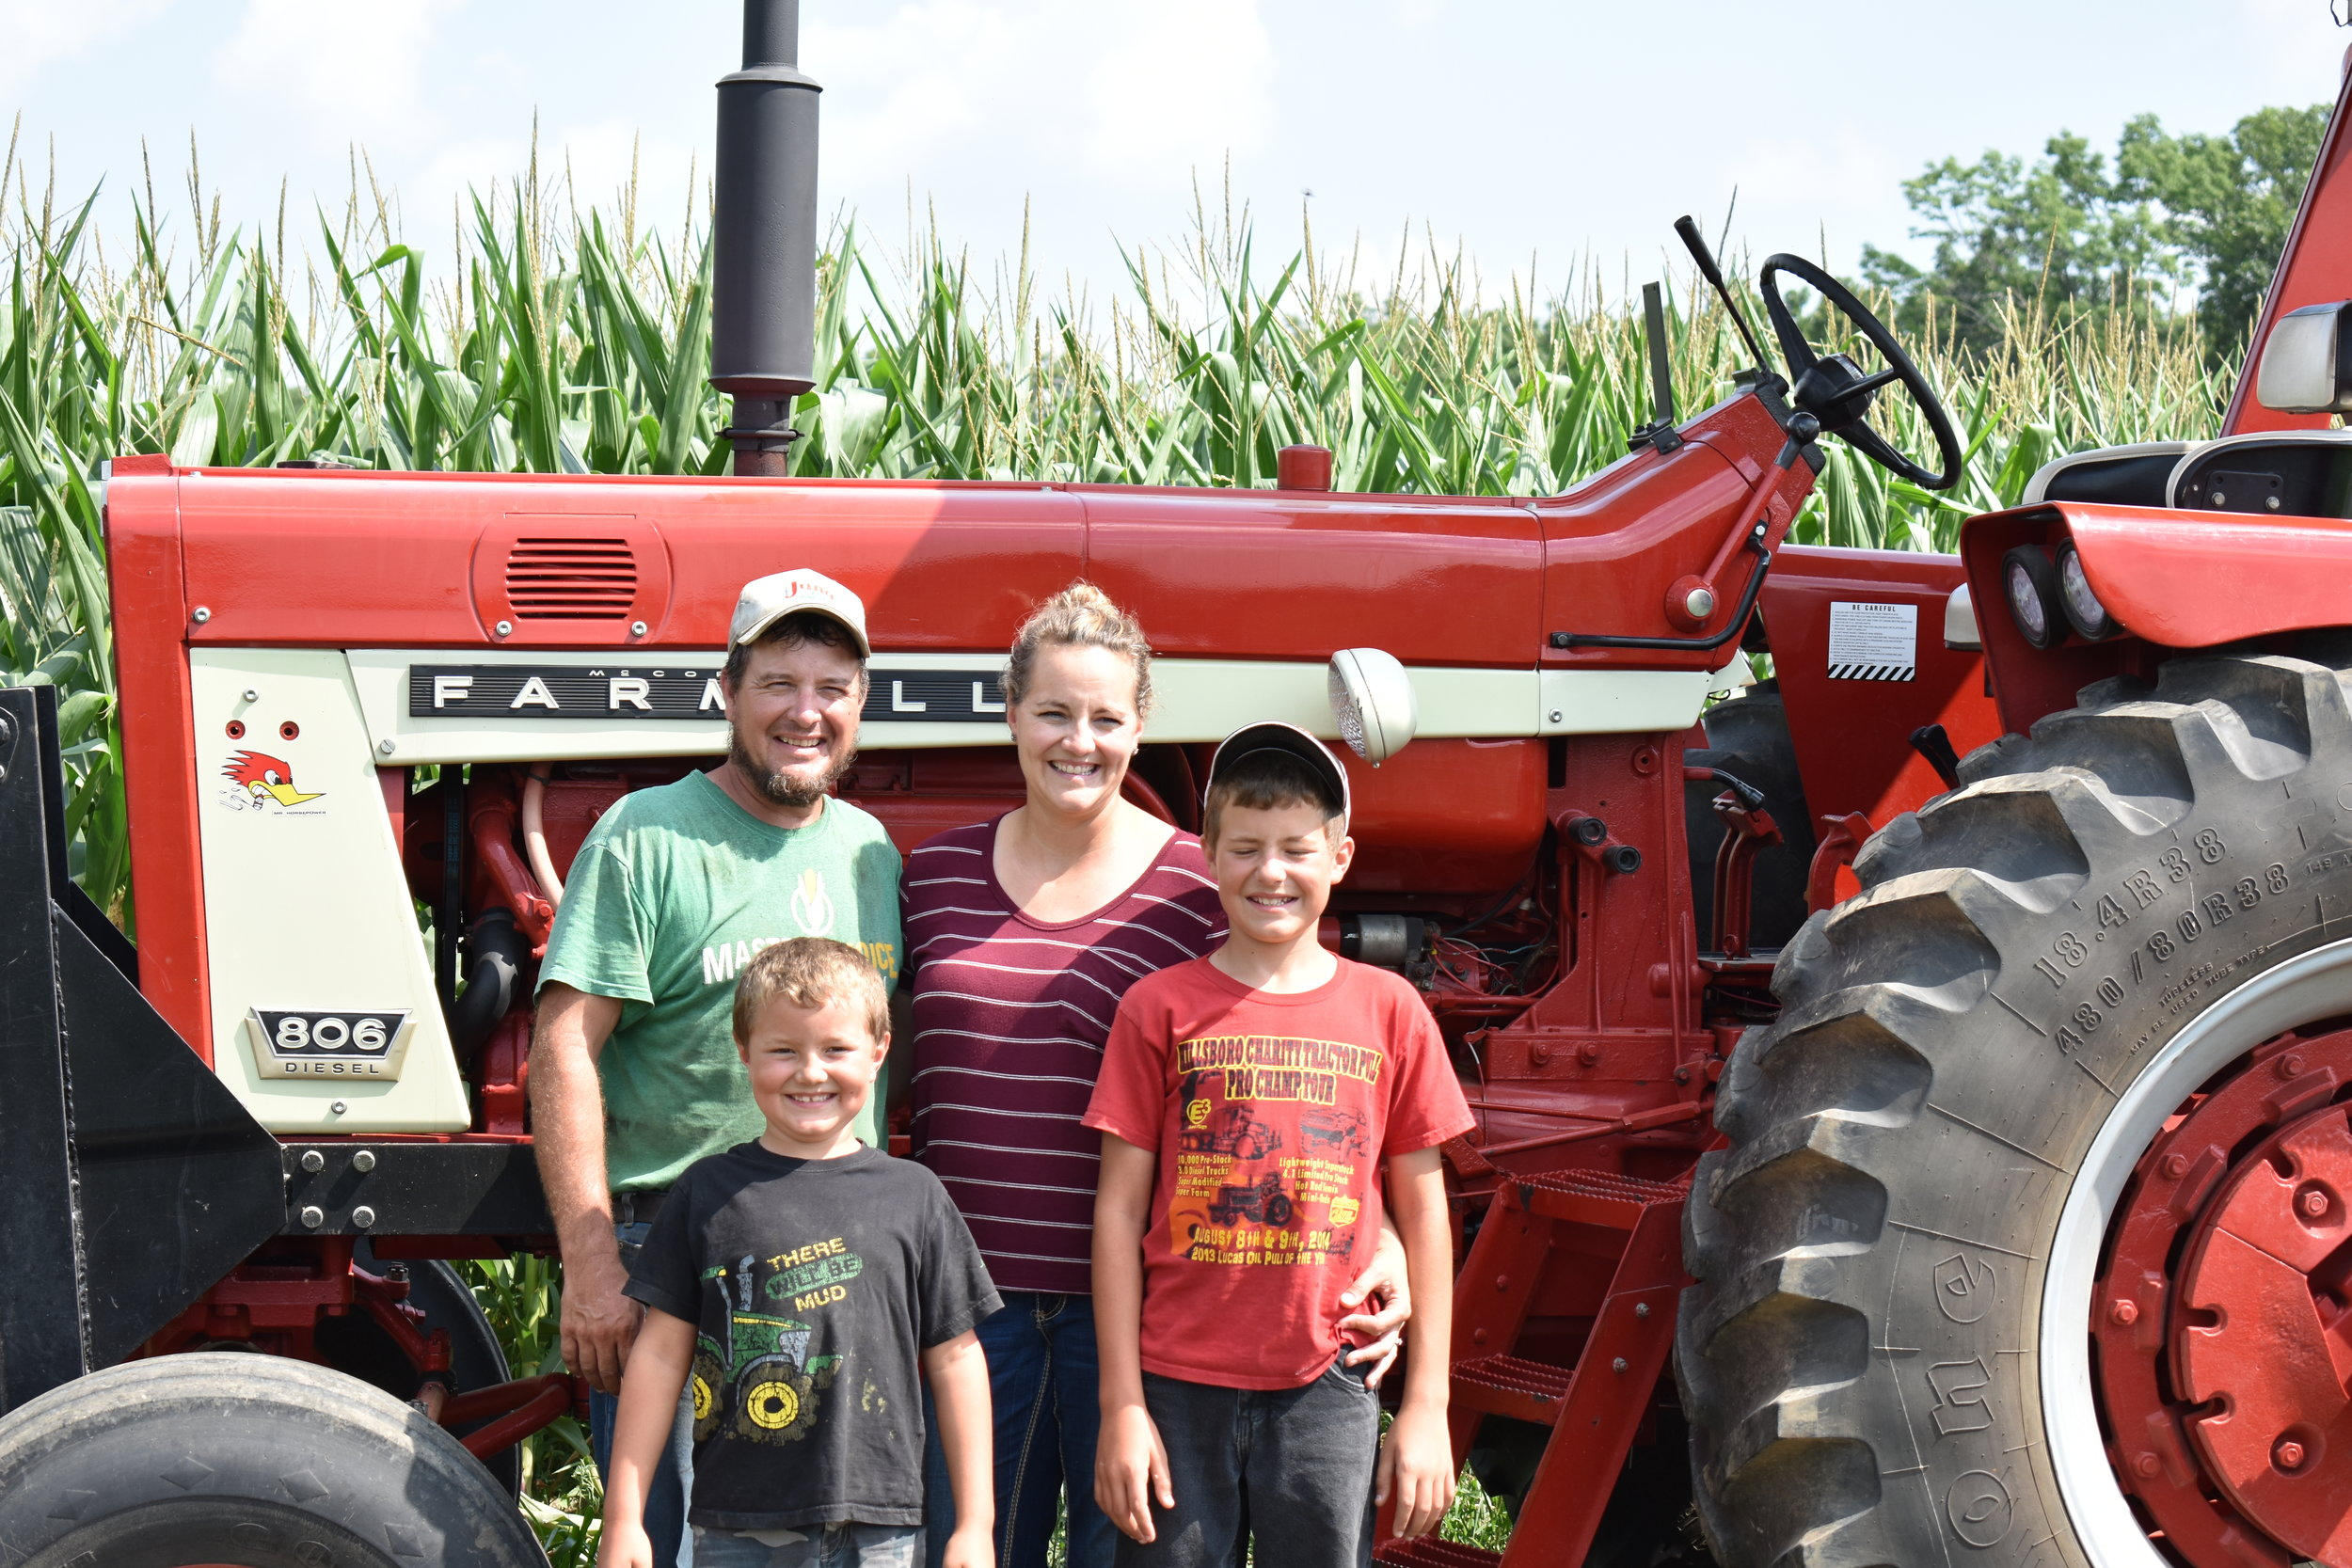 "Shiloh Farms - Ben and his wife, Corey, and their two boys, Case and Avery, have been farming in Wonewoc for 7 years. He grew up in Sandusky, OH, spent some time working in a sheriff's department, but was always brought back to farming where he ""felt most at peace with the Lord."" Their farm, Shiloh Farms, is indeed a peaceful place. It is clean, well-kept, and has an amazing tree house and swing set off of an old rambling pine tree in the front yard where the children can be seen playing. It seems a perfect place to be a child. And a perfect place to grow small grains."